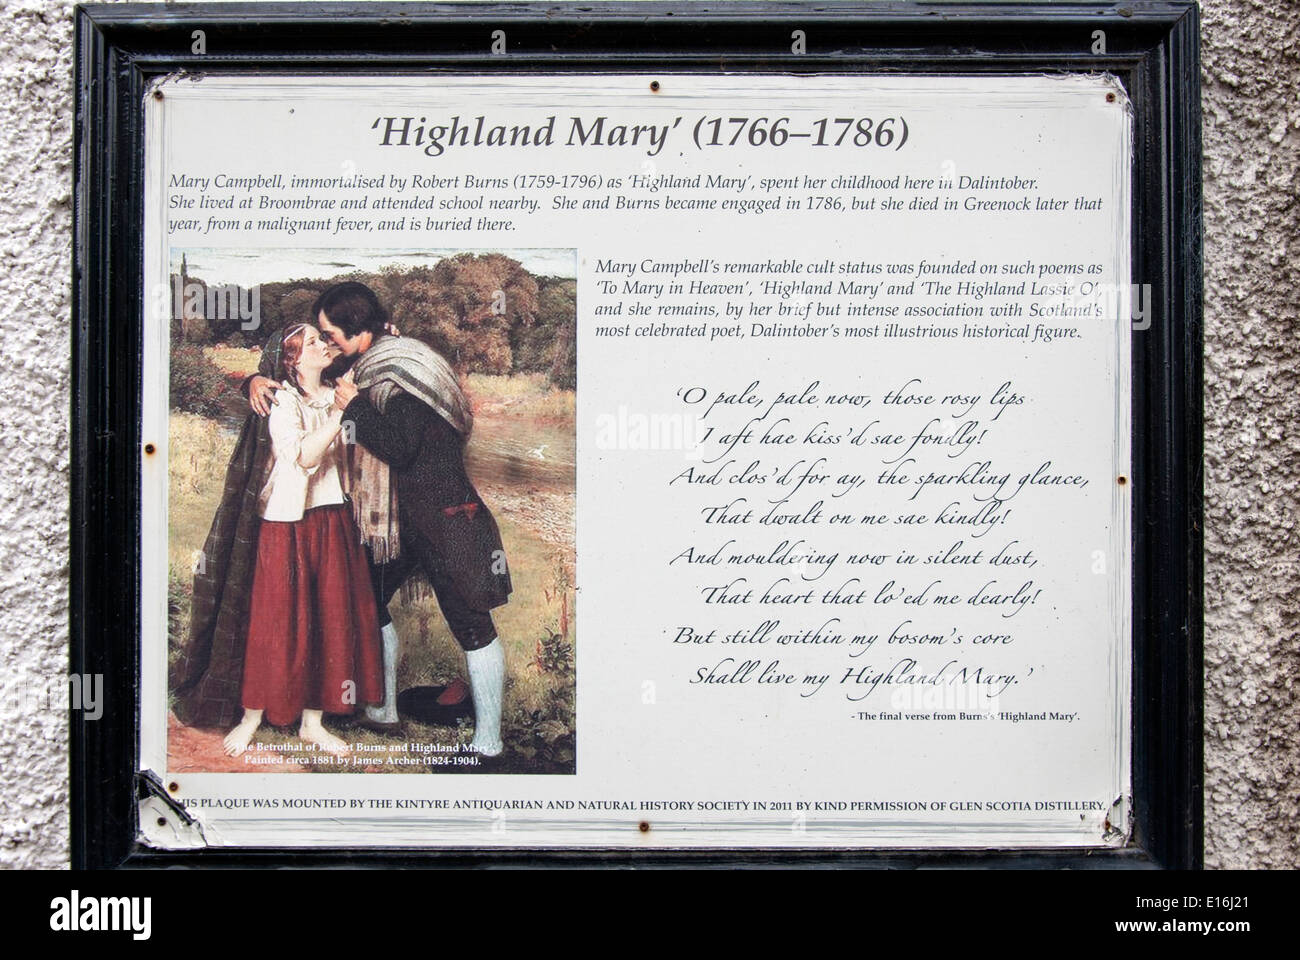 Commemoration Plaque to Highland Mary Campbell and Robert Burns - Stock Image